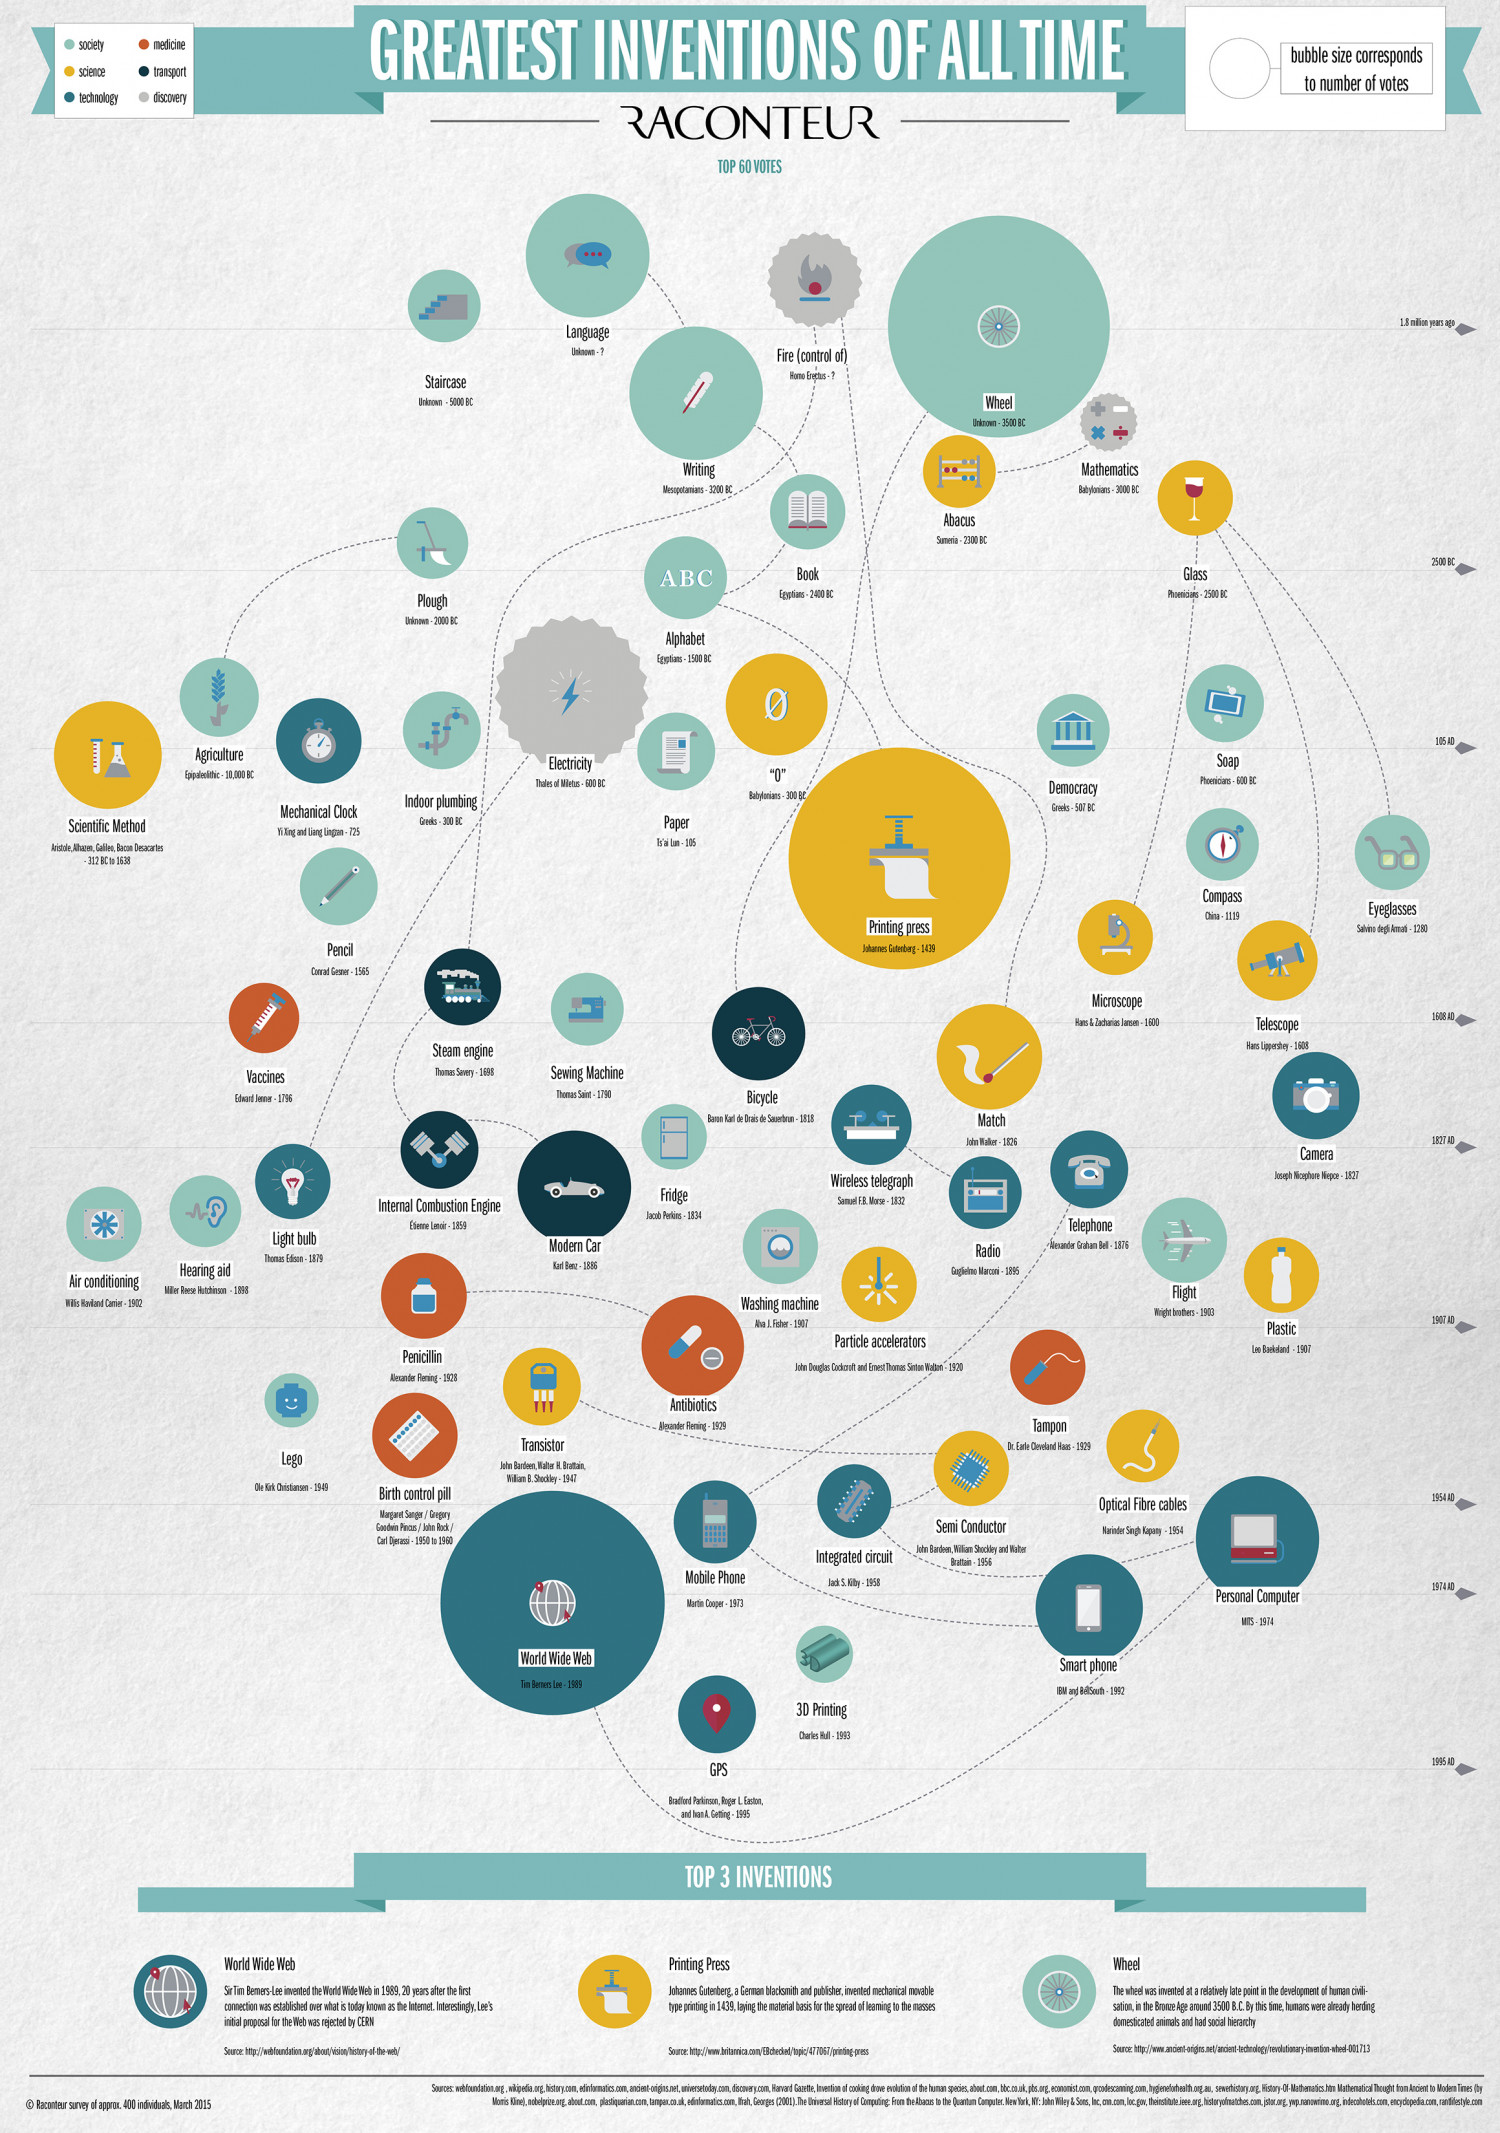 The World's Greatest Inventions Infographic